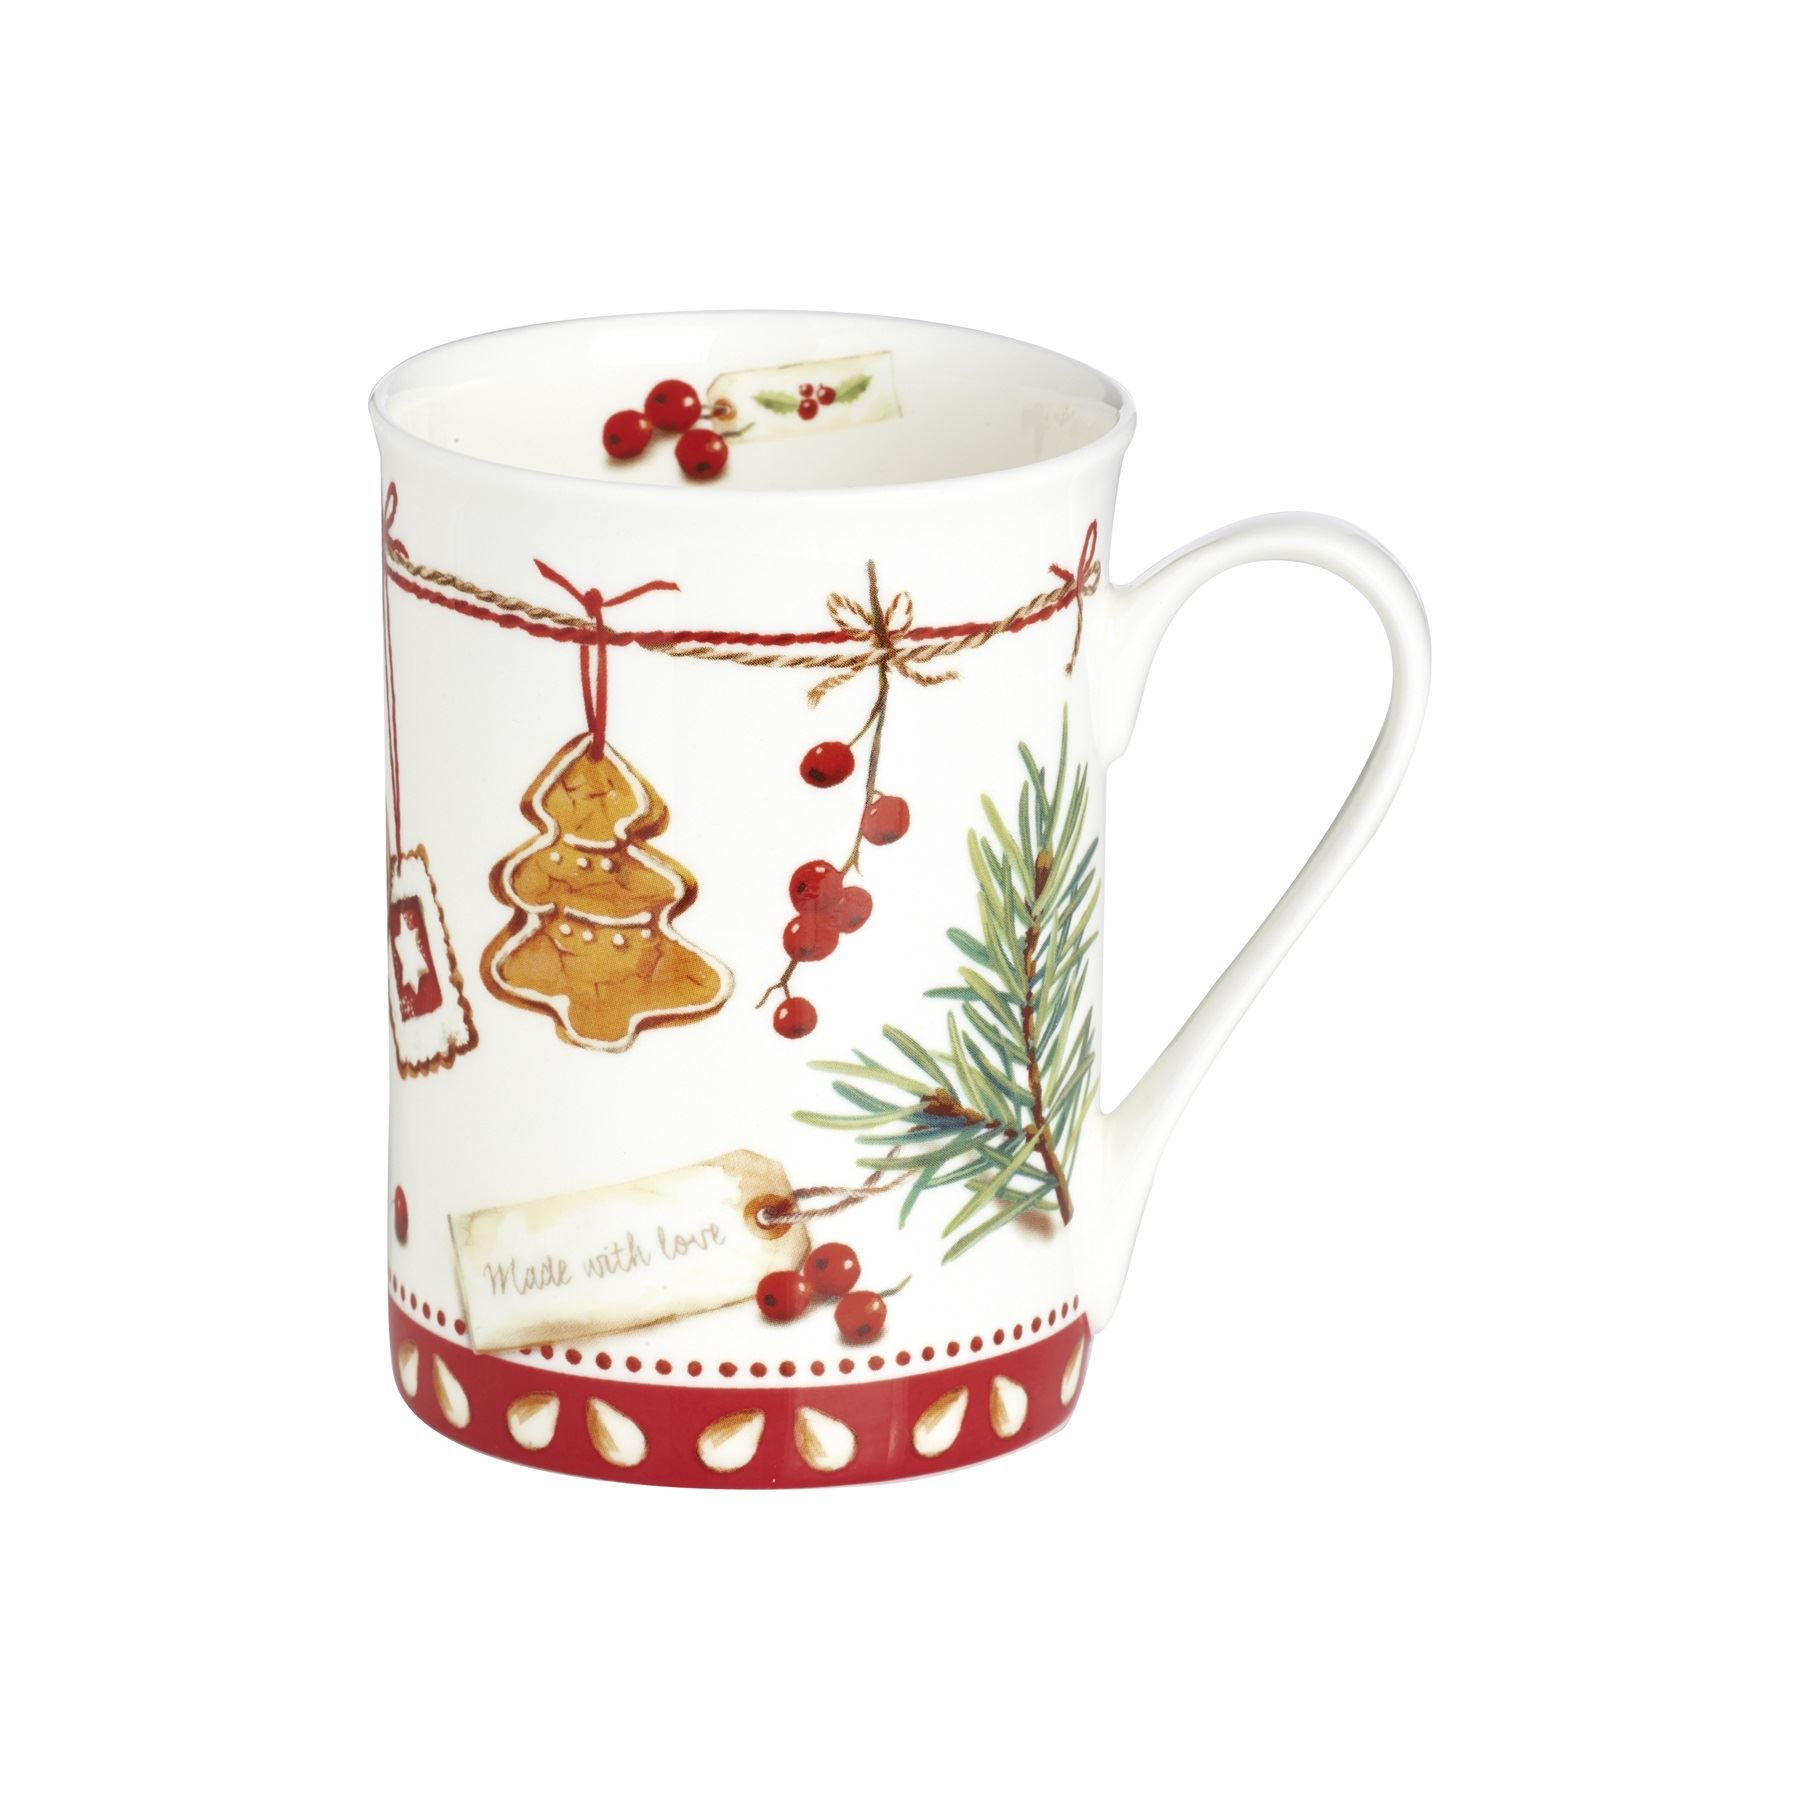 Ihr Christmas Cookies Made With Love Bone China Festive Coffee Mug Tea Cup Gift Ebay